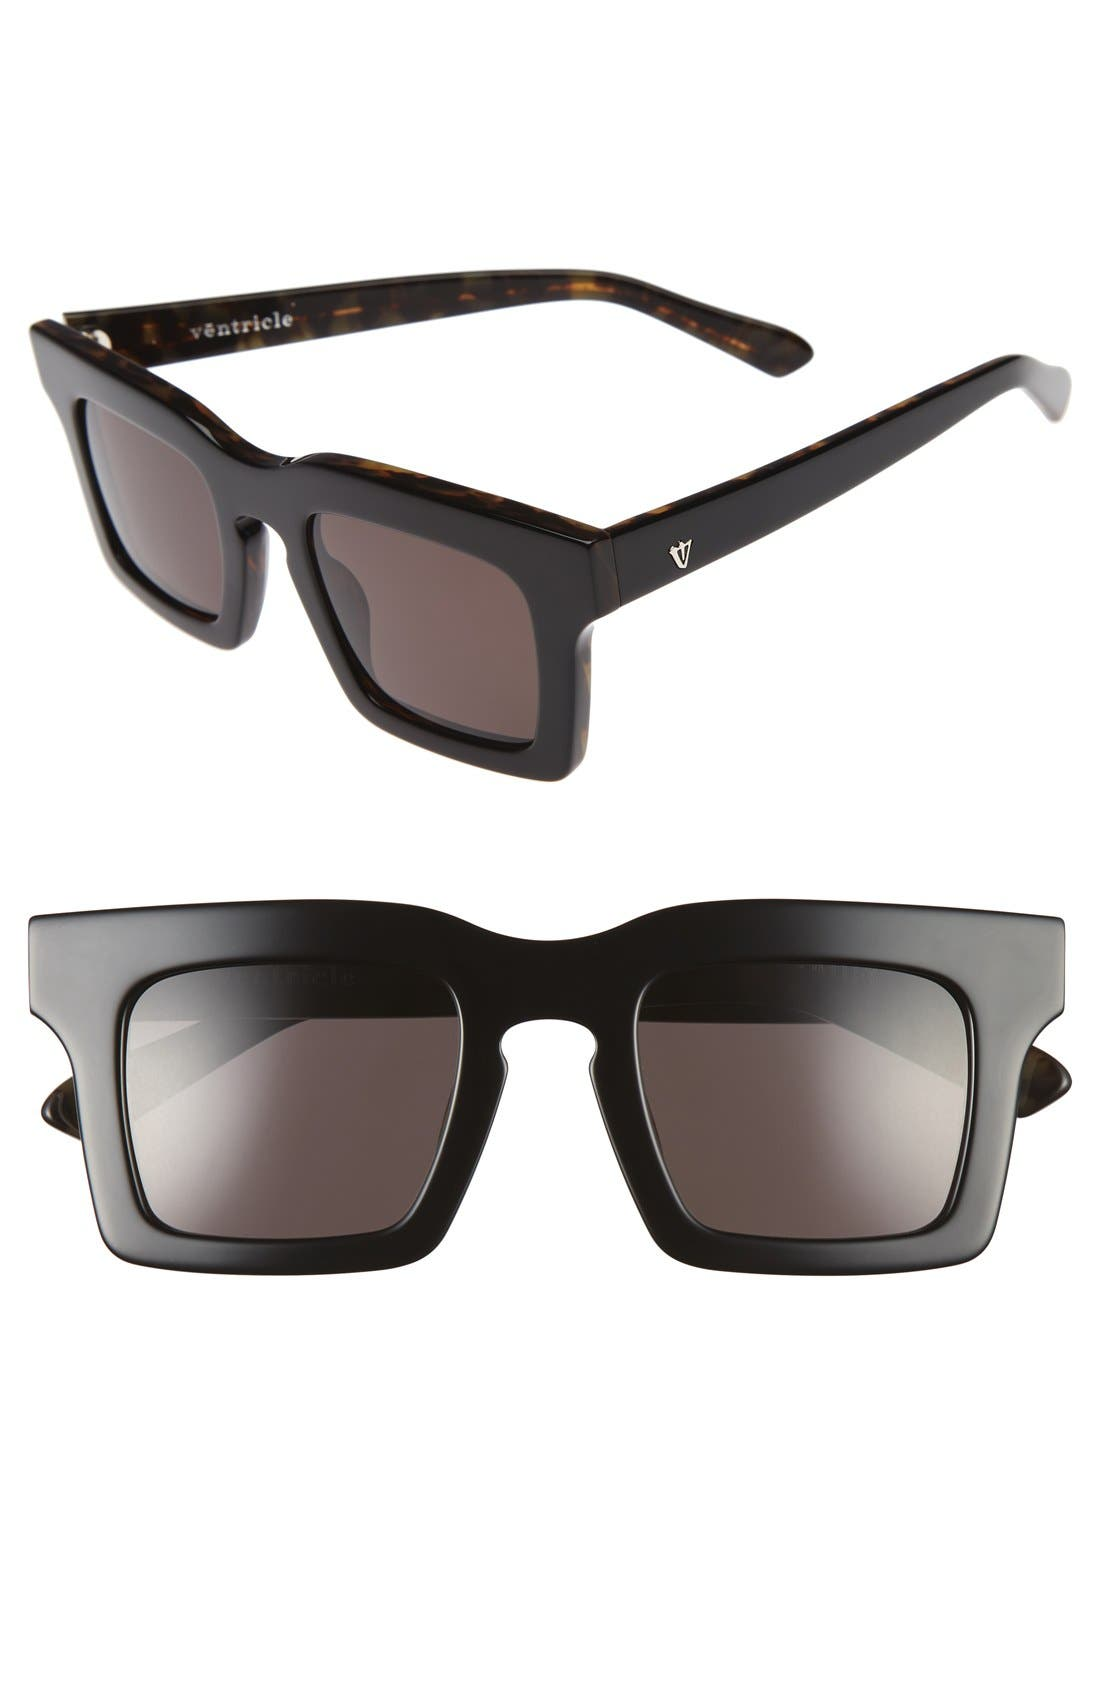 Main Image - VALLEY Ventricle 50mm Sunglasses